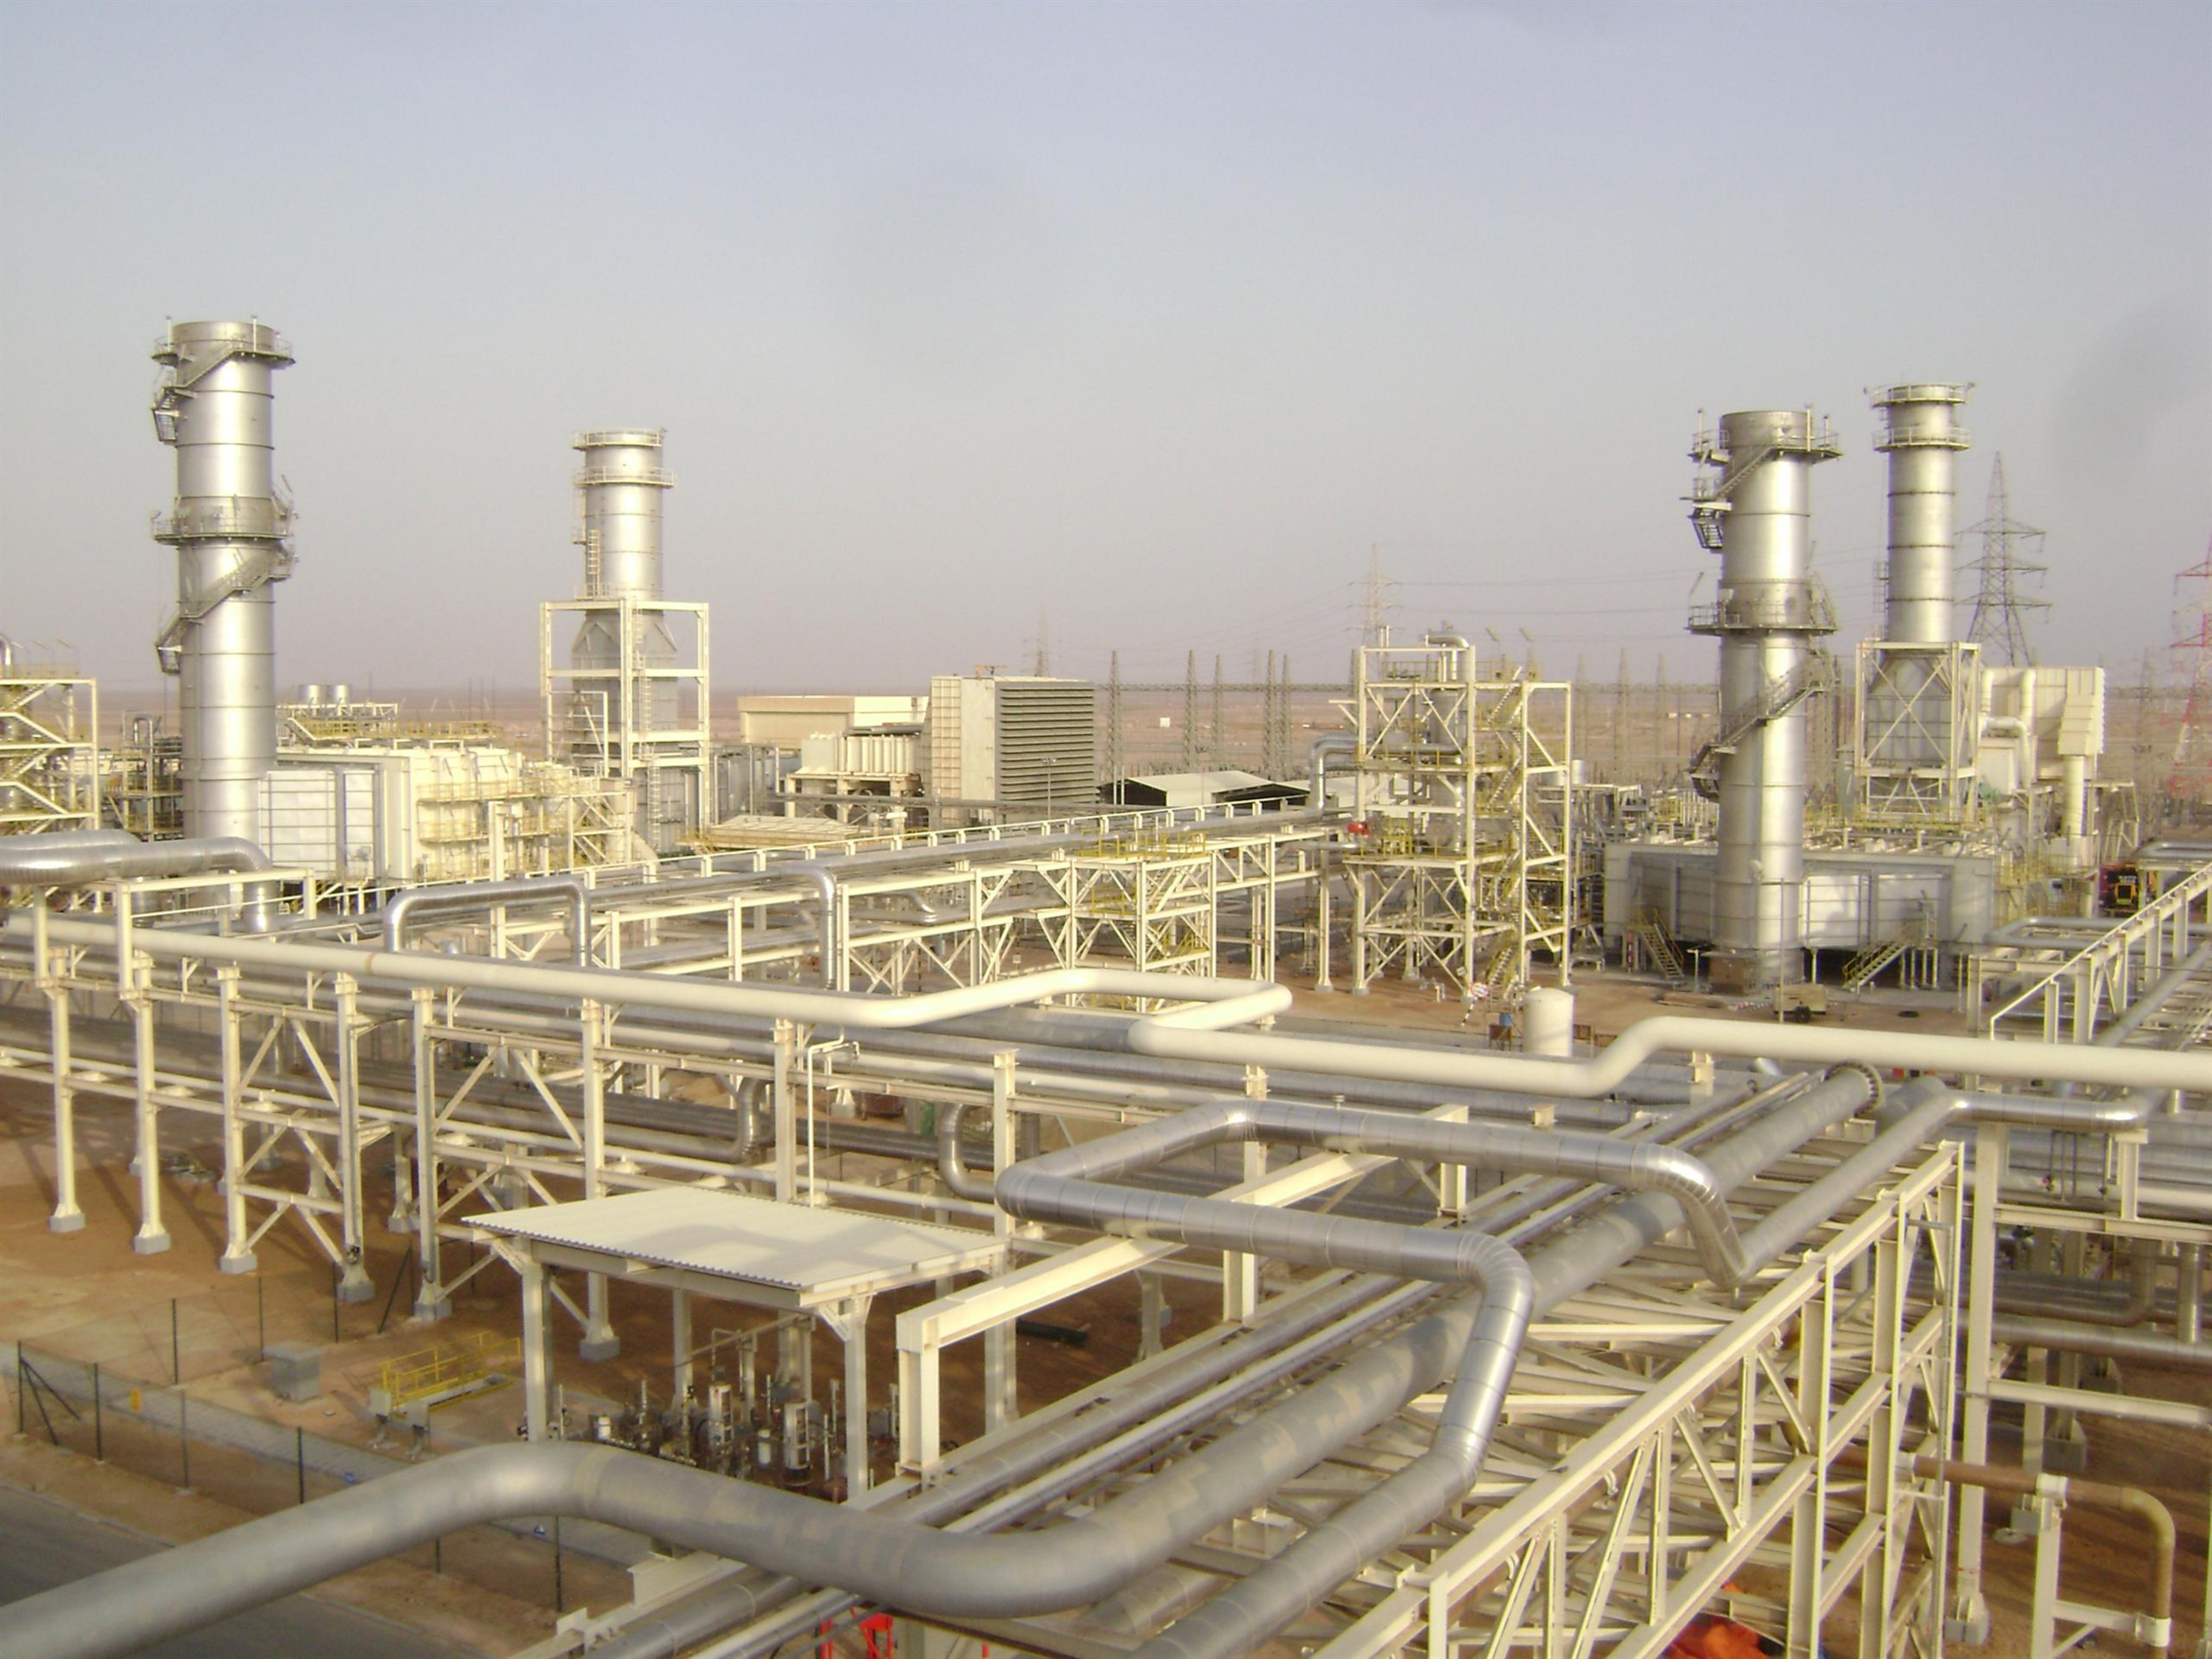 Qarn alam enhacnces oil recovery oman.png